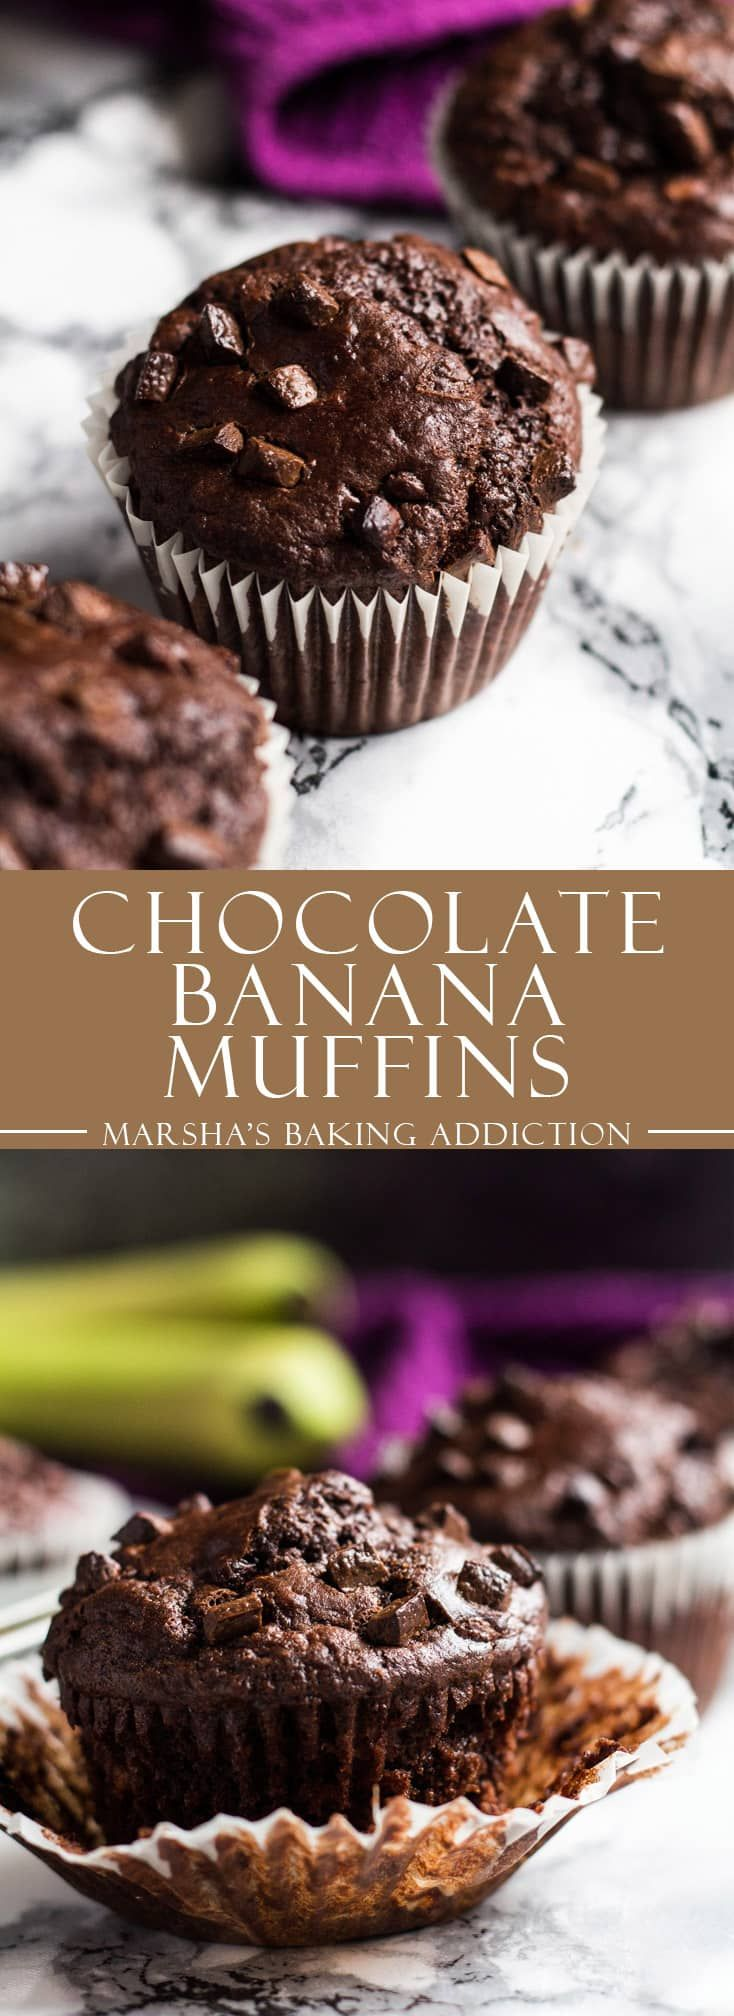 Chocolate Banana Muffins - Deliciously soft and moist chocolate muffins that are full of banana flavour, and studded with chocolate chips!